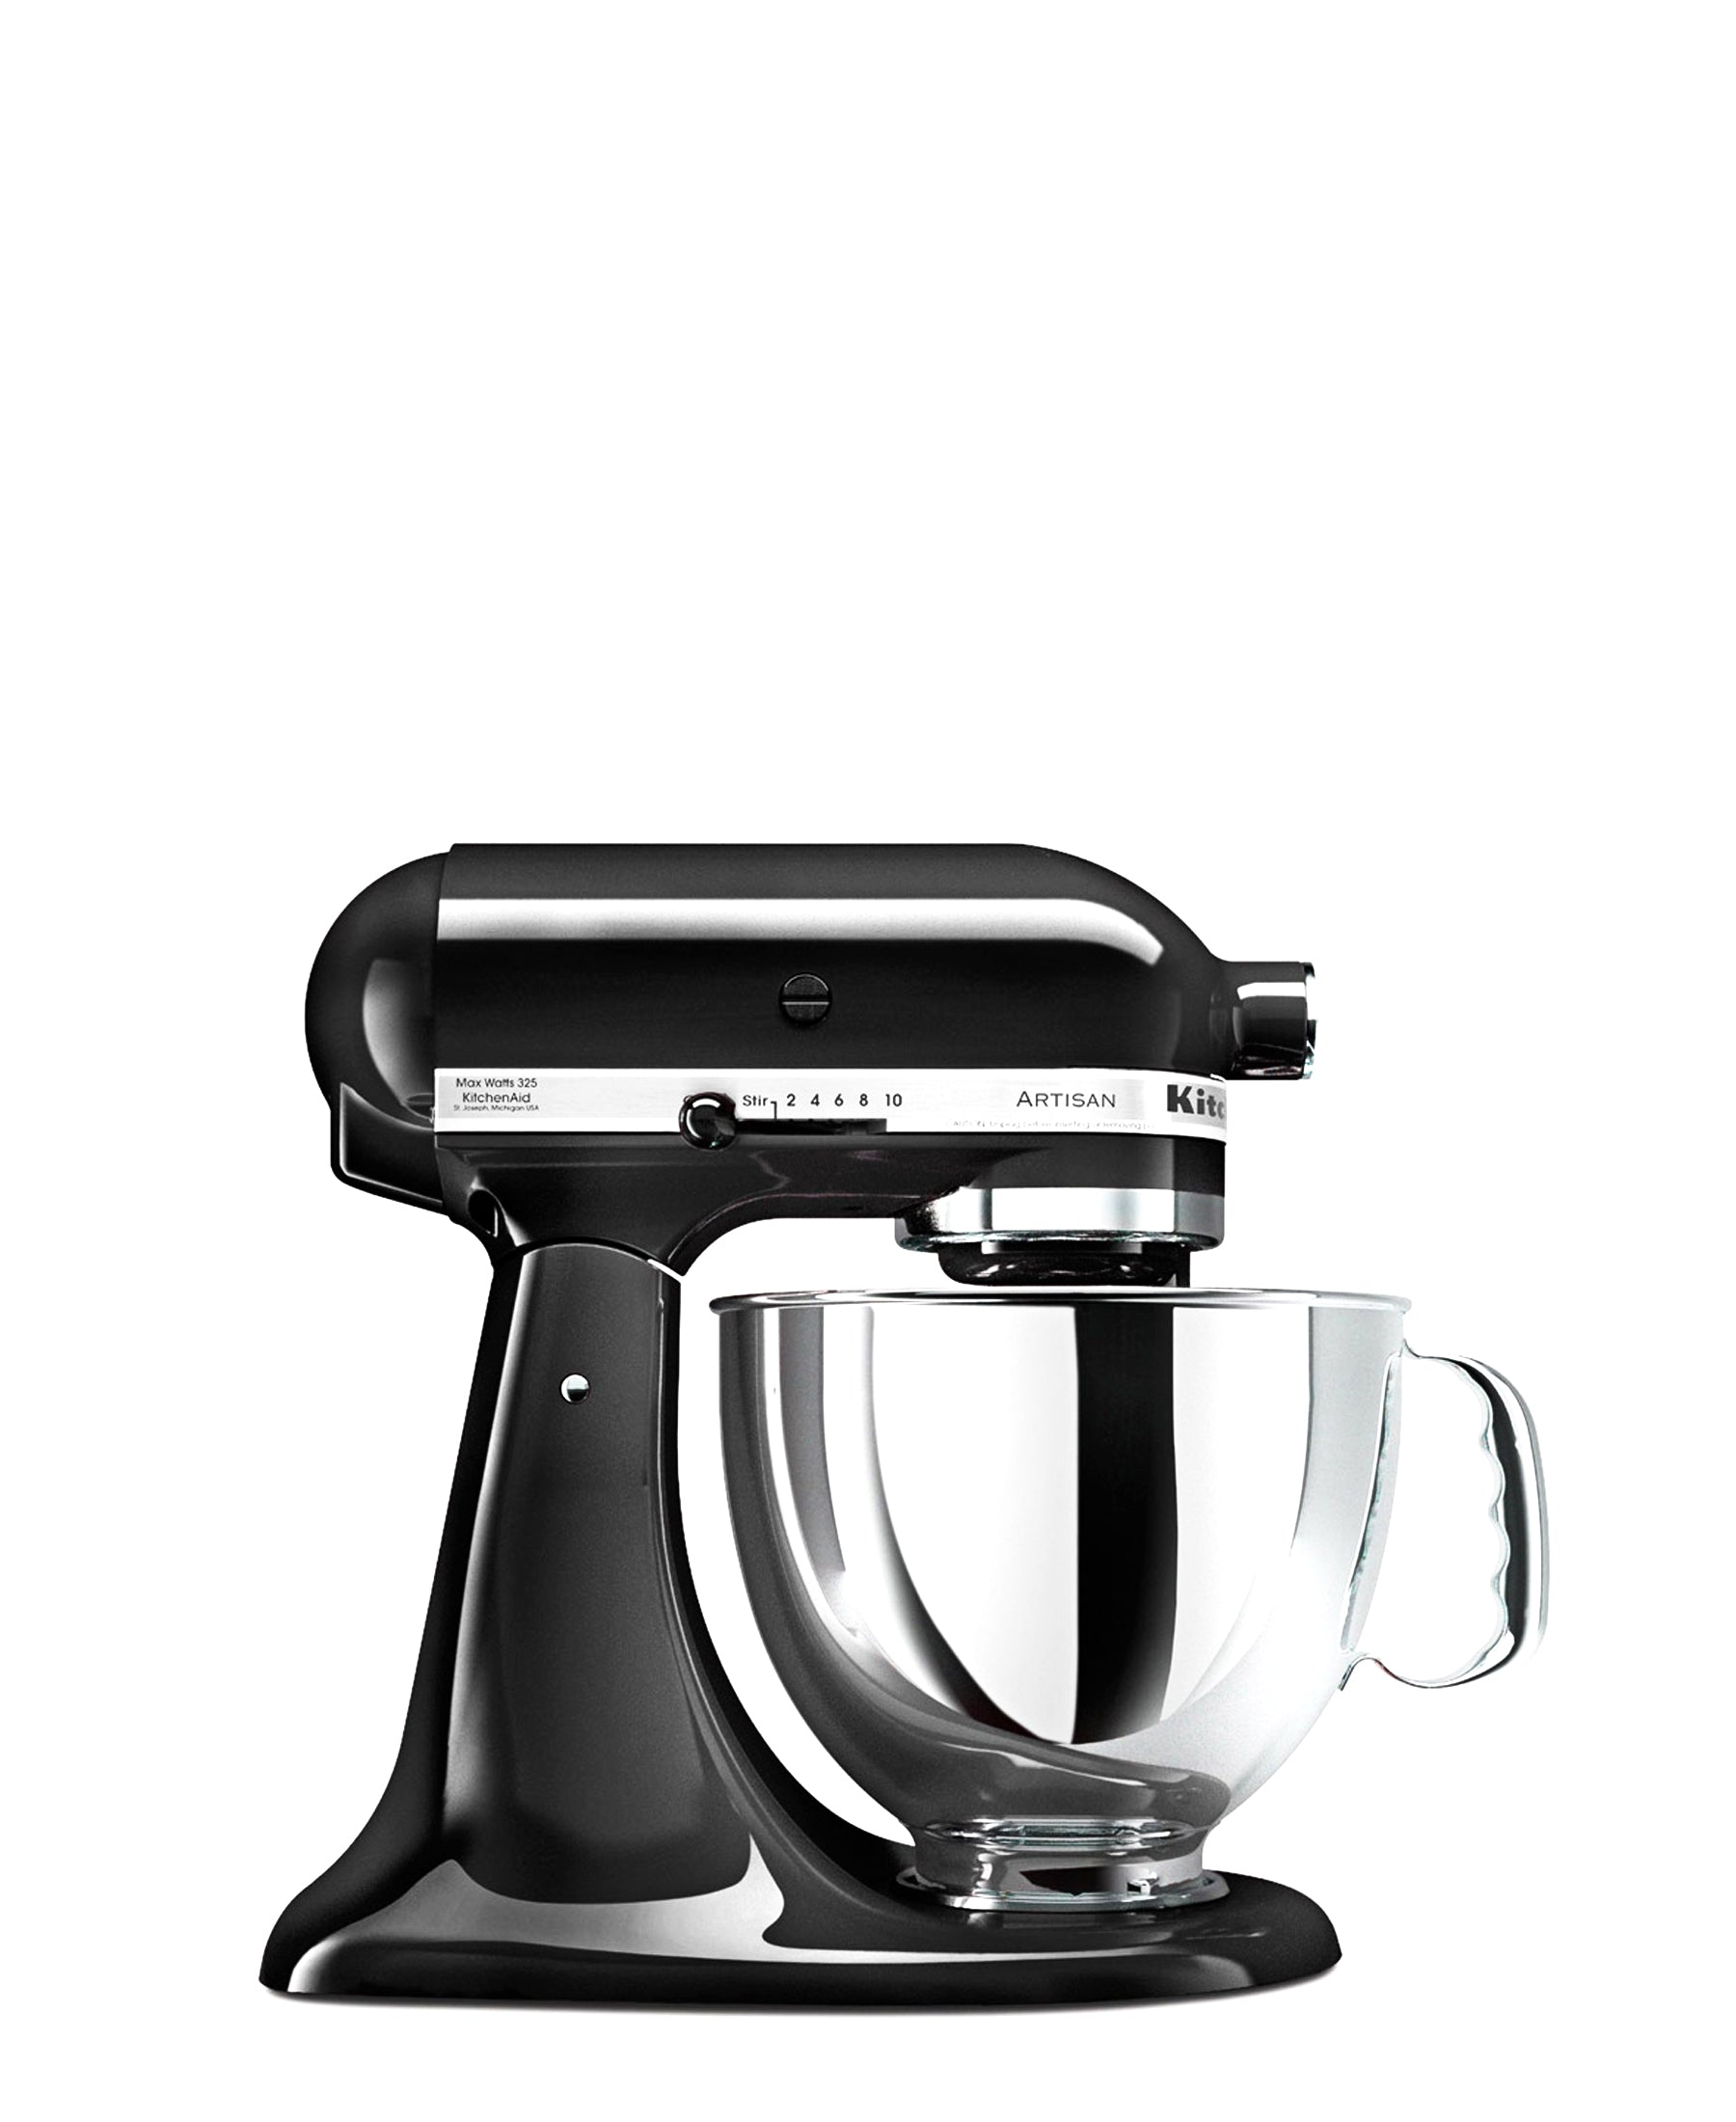 KitchenAid 4.8LT Stand Mixer + Free S/S Bowl - Onyx Black